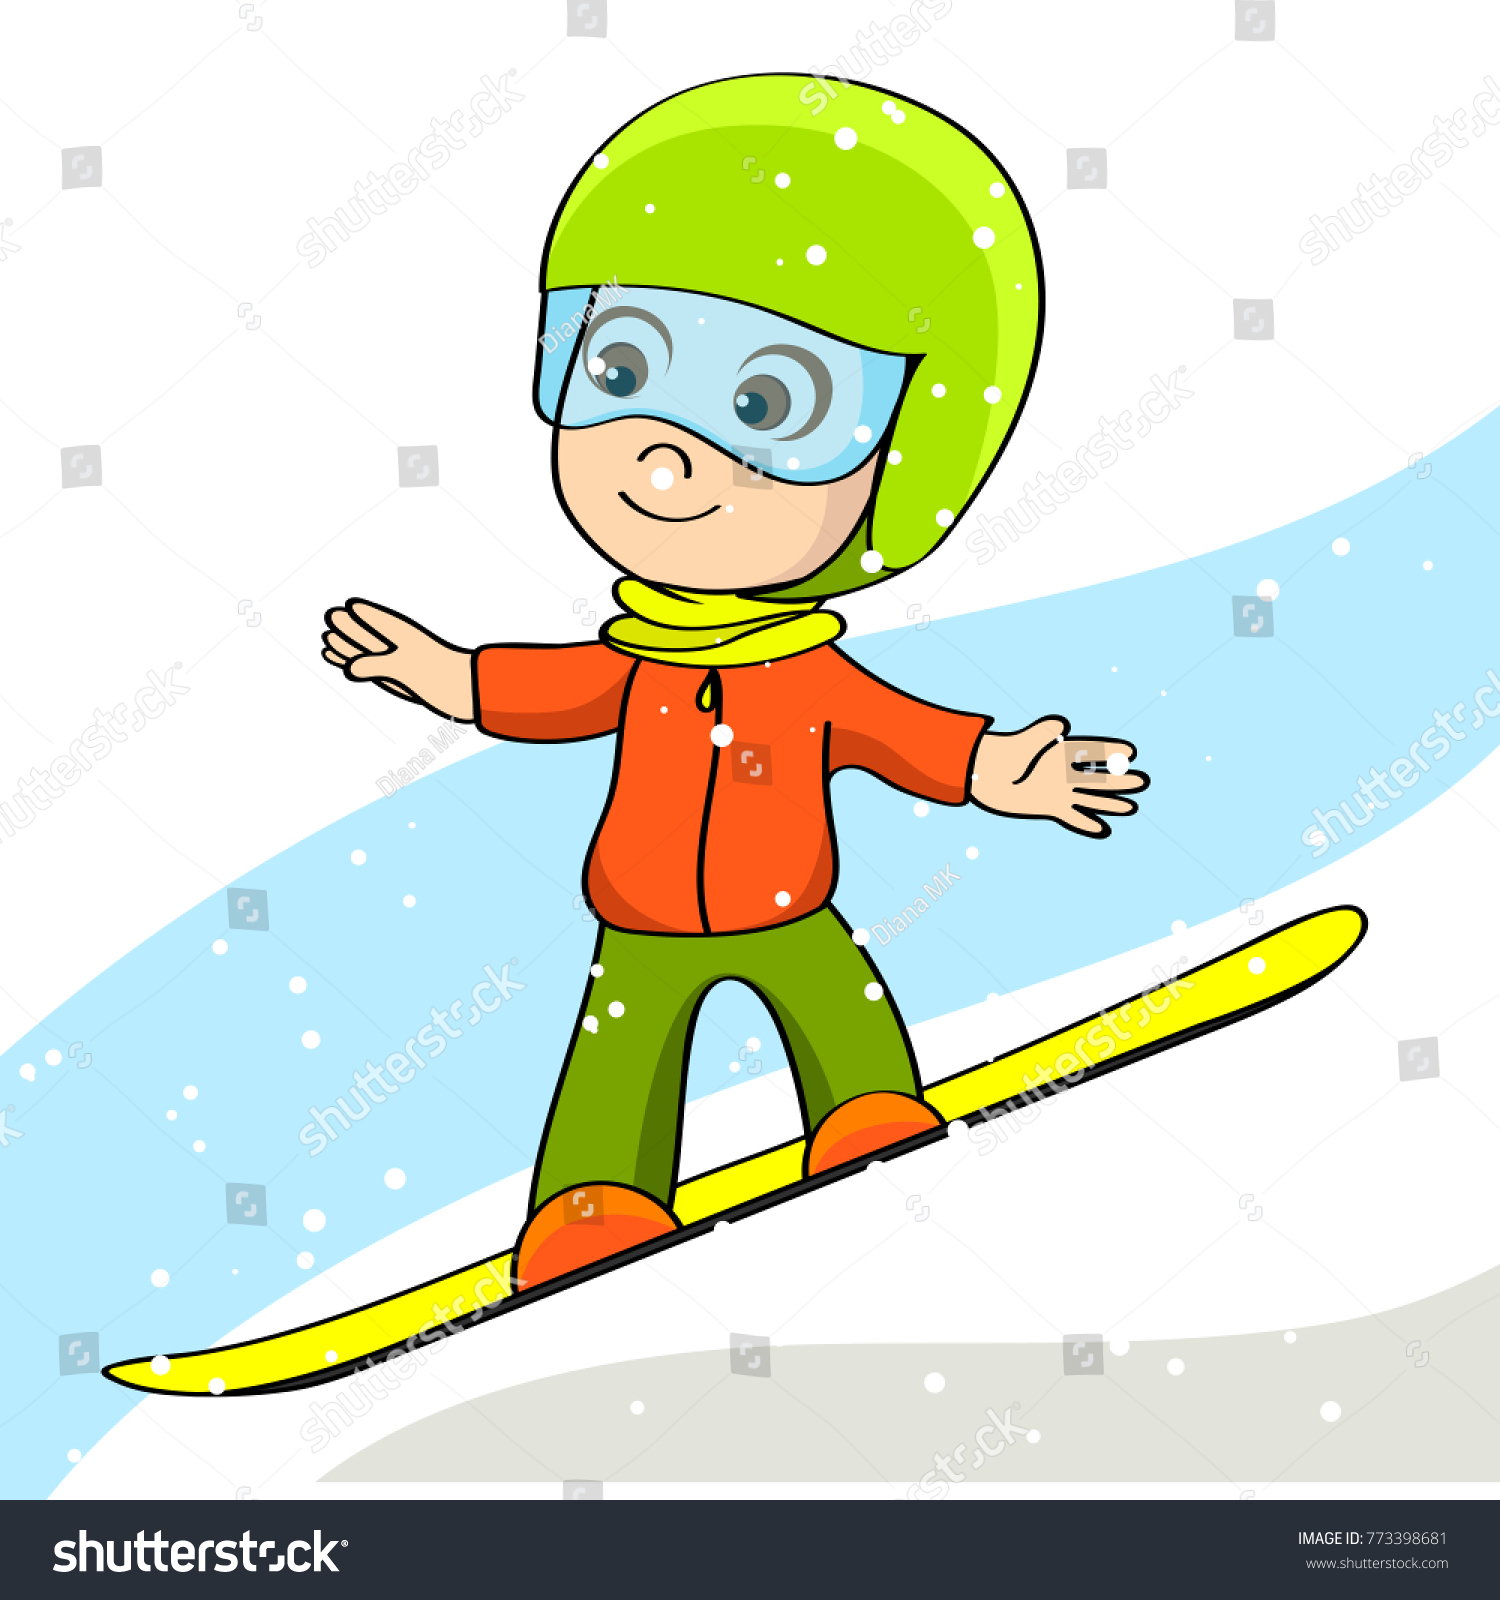 Kid On Board Boy On Snowboard Stock Vector Royalty Free 773398681